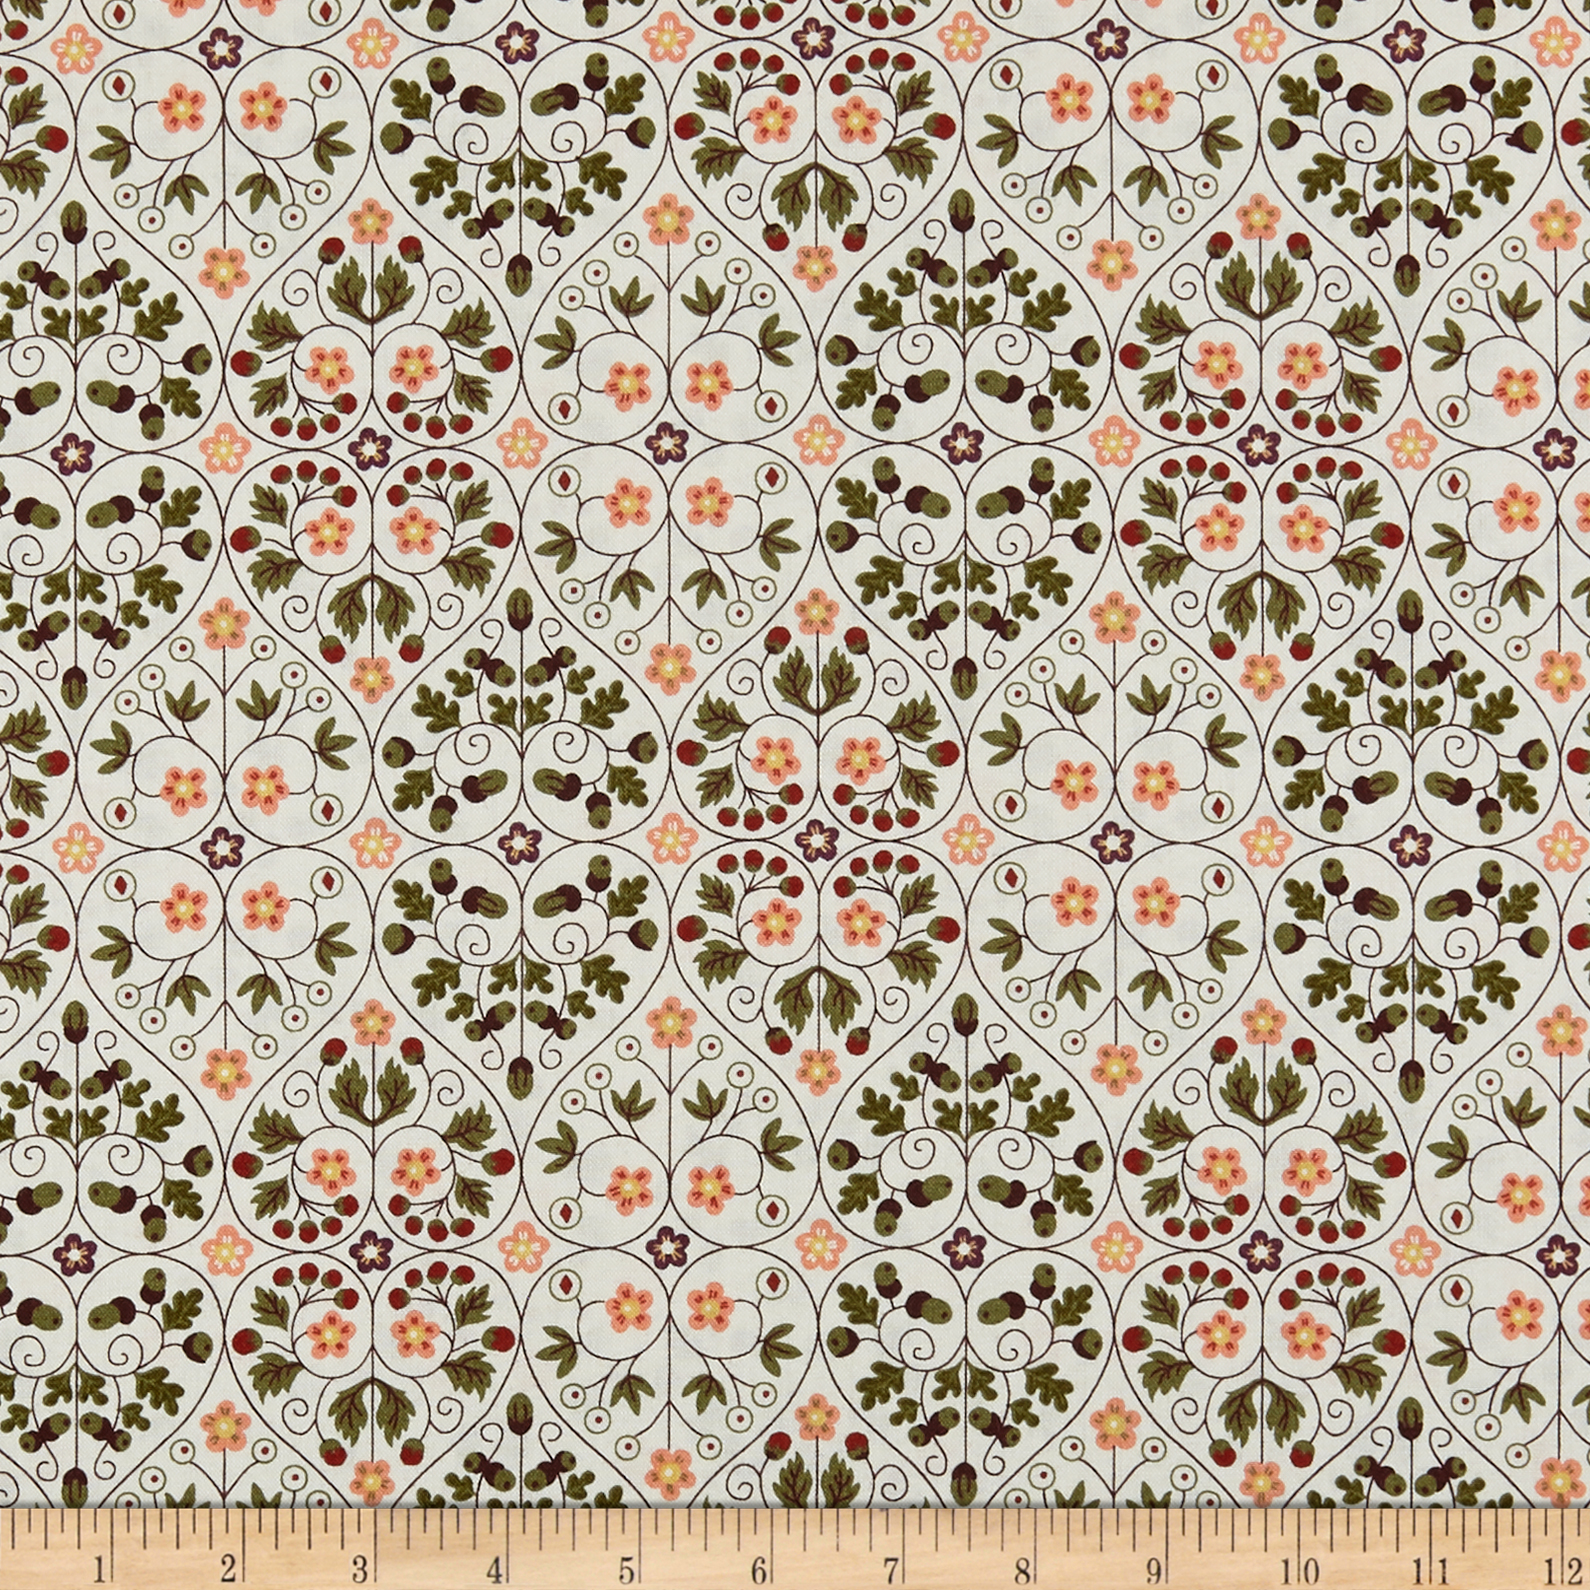 INOpets.com Anything for Pets Parents & Their Pets Liberty Of London Orchard Garden Garden Gates Natural/Peach Fabric